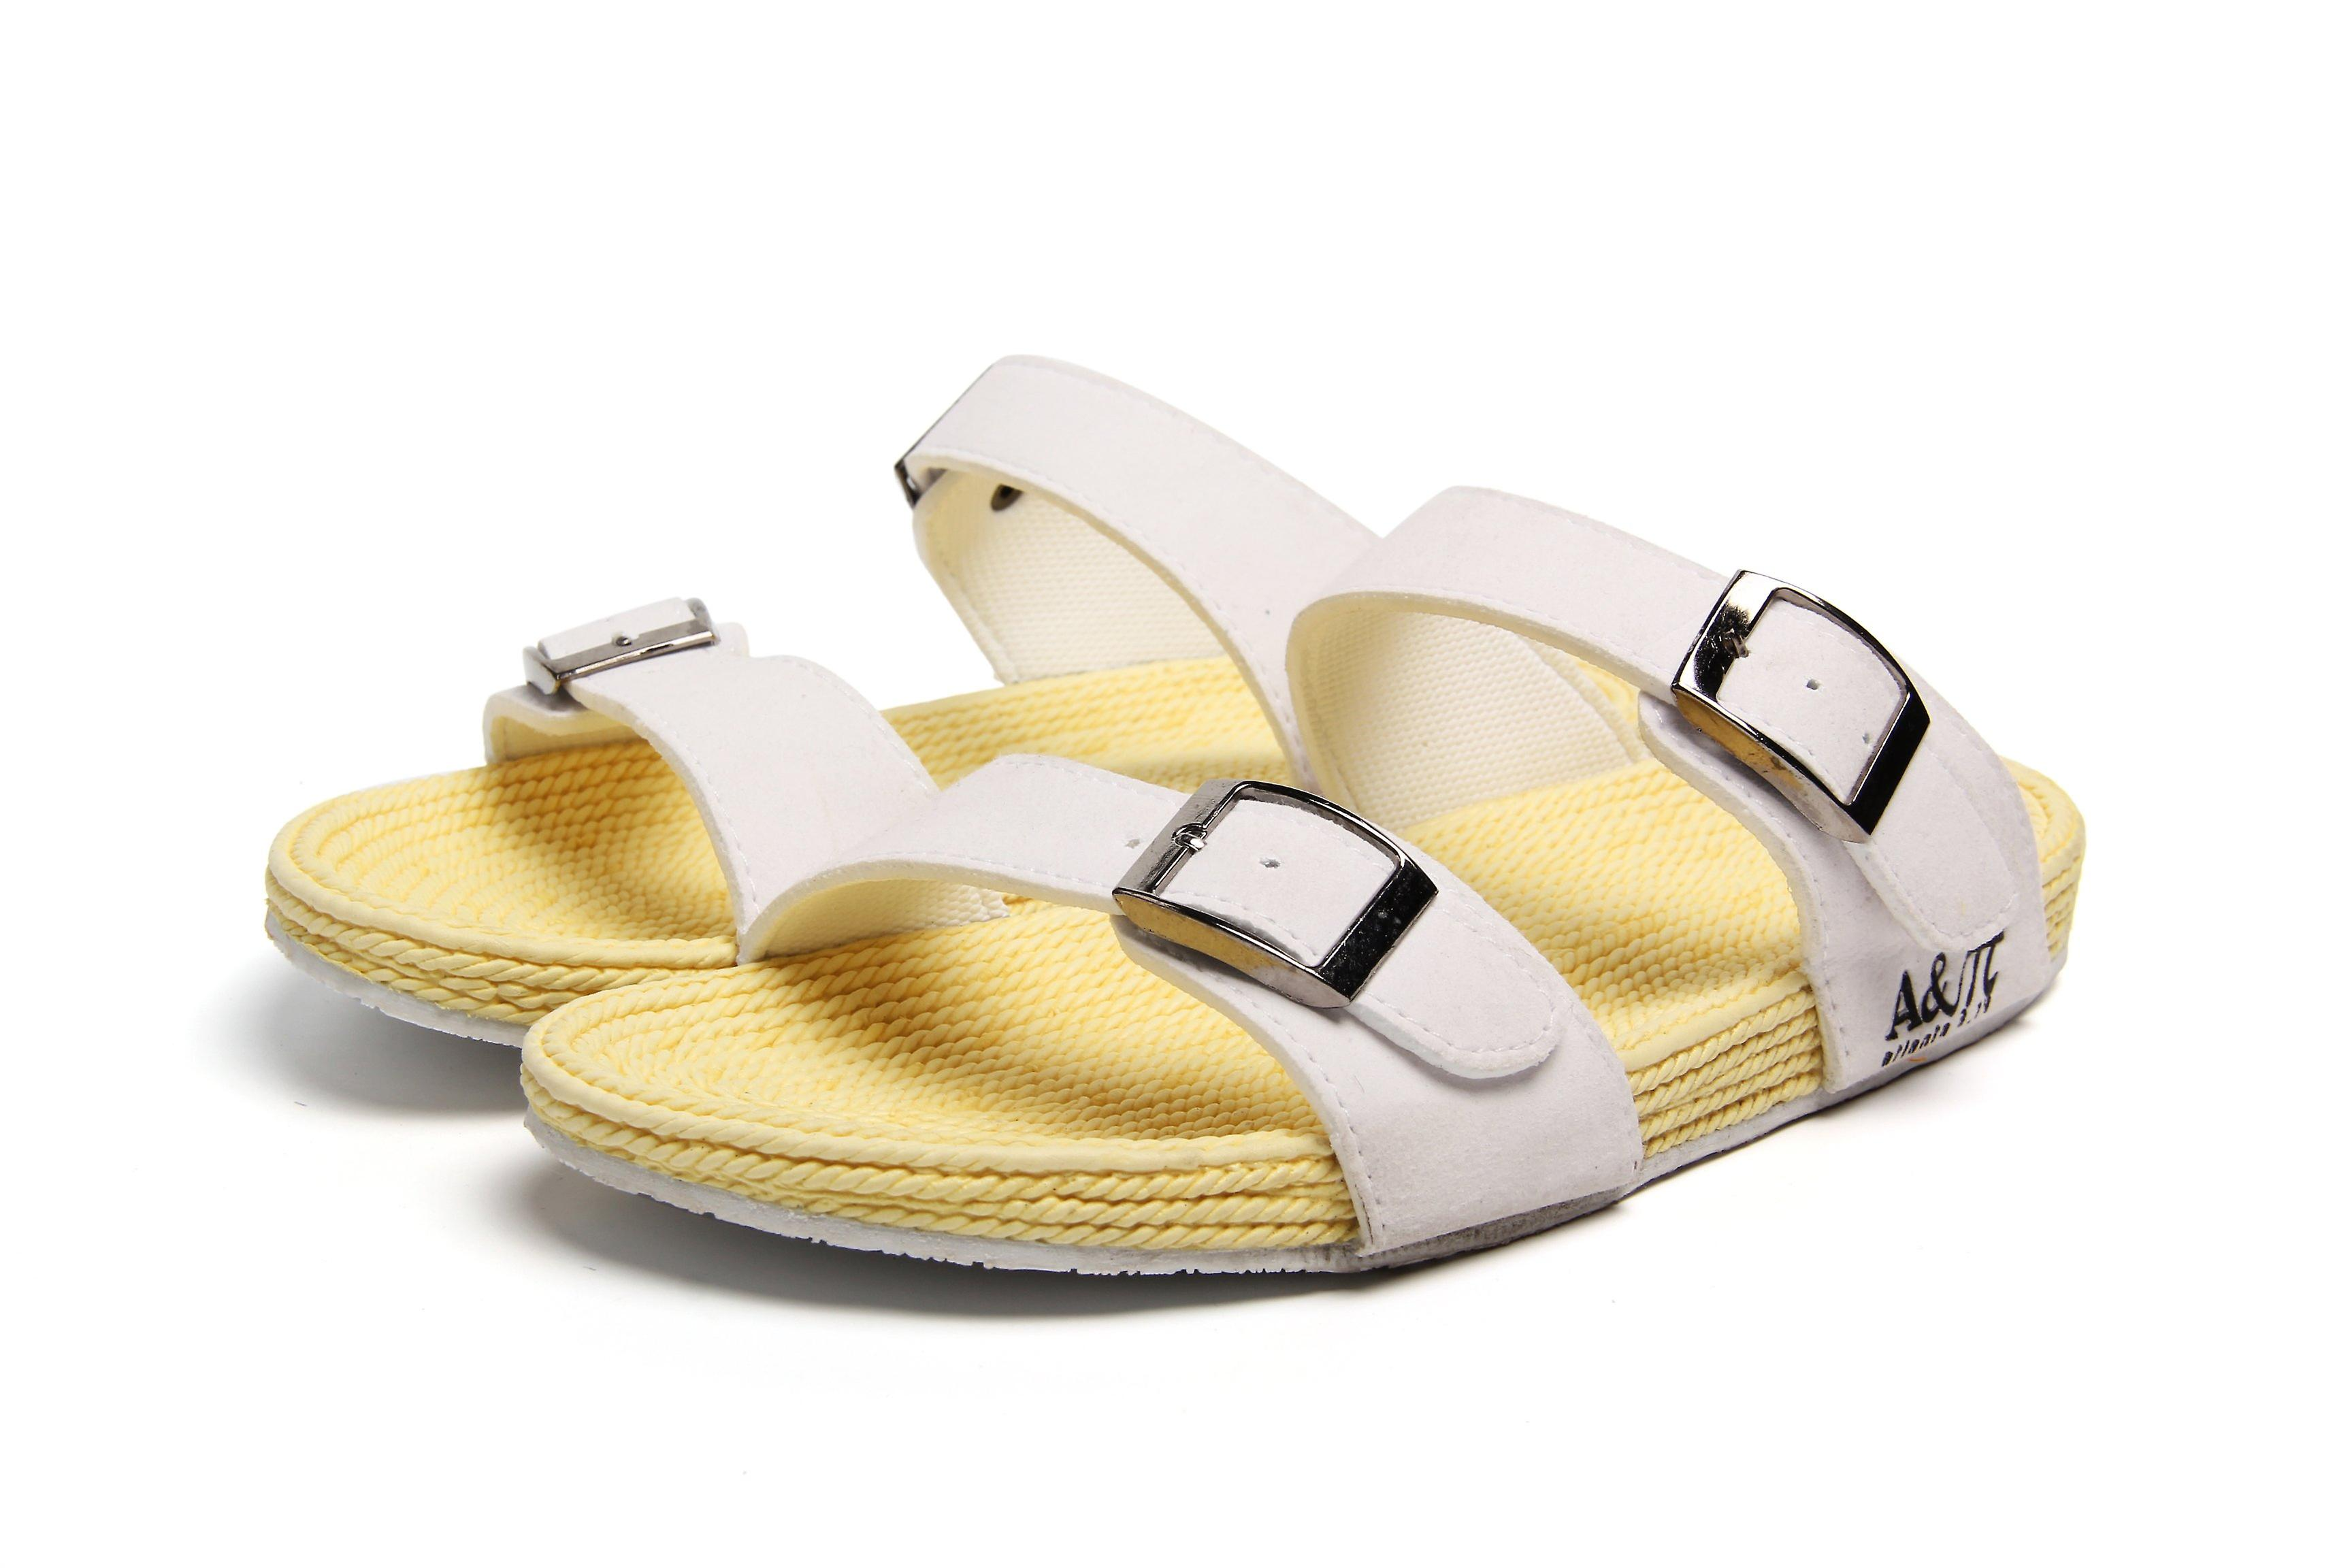 Dual band white-beige sandals